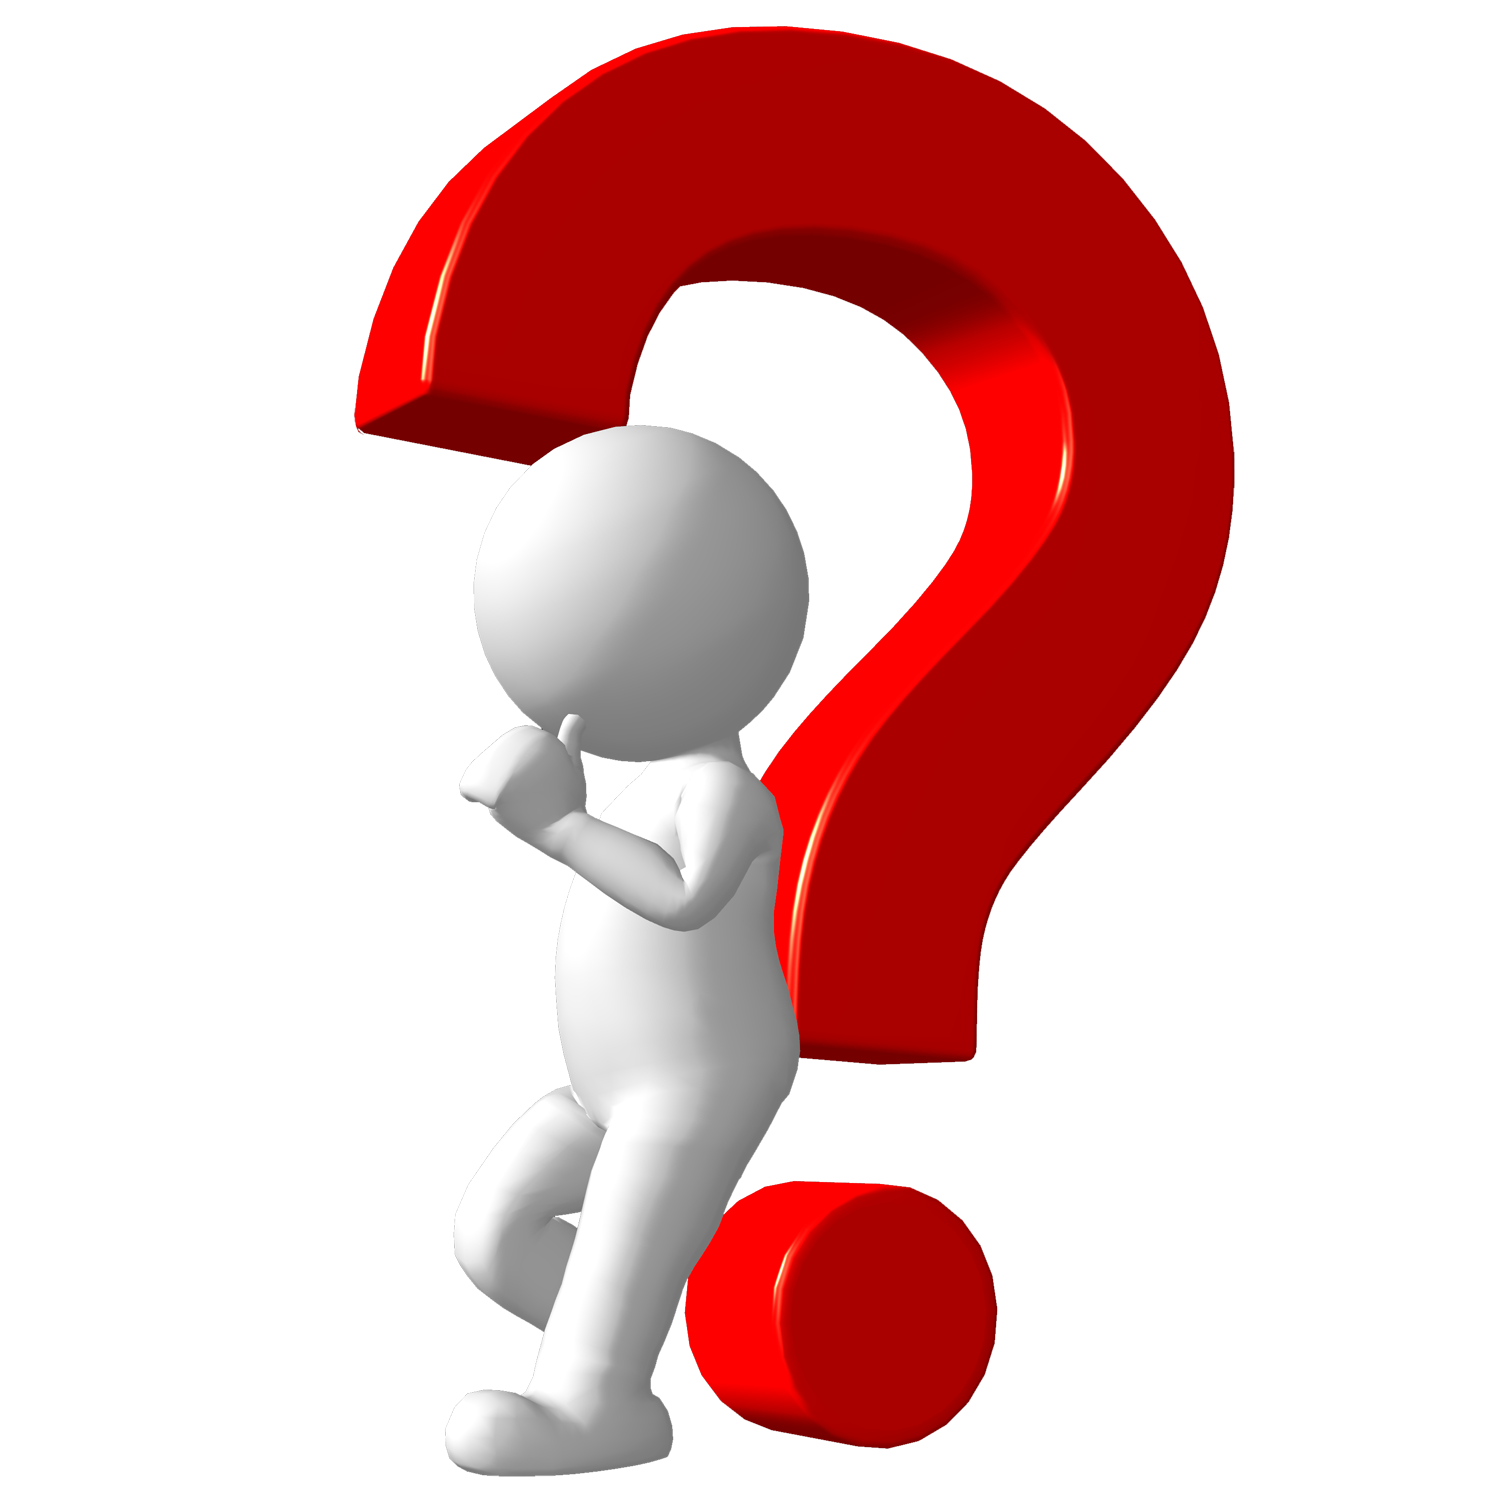 4080354b8aa40b5c97e249598b4604f9_question-mark-icon-png-clipart-question-clipart-png_1500-1500